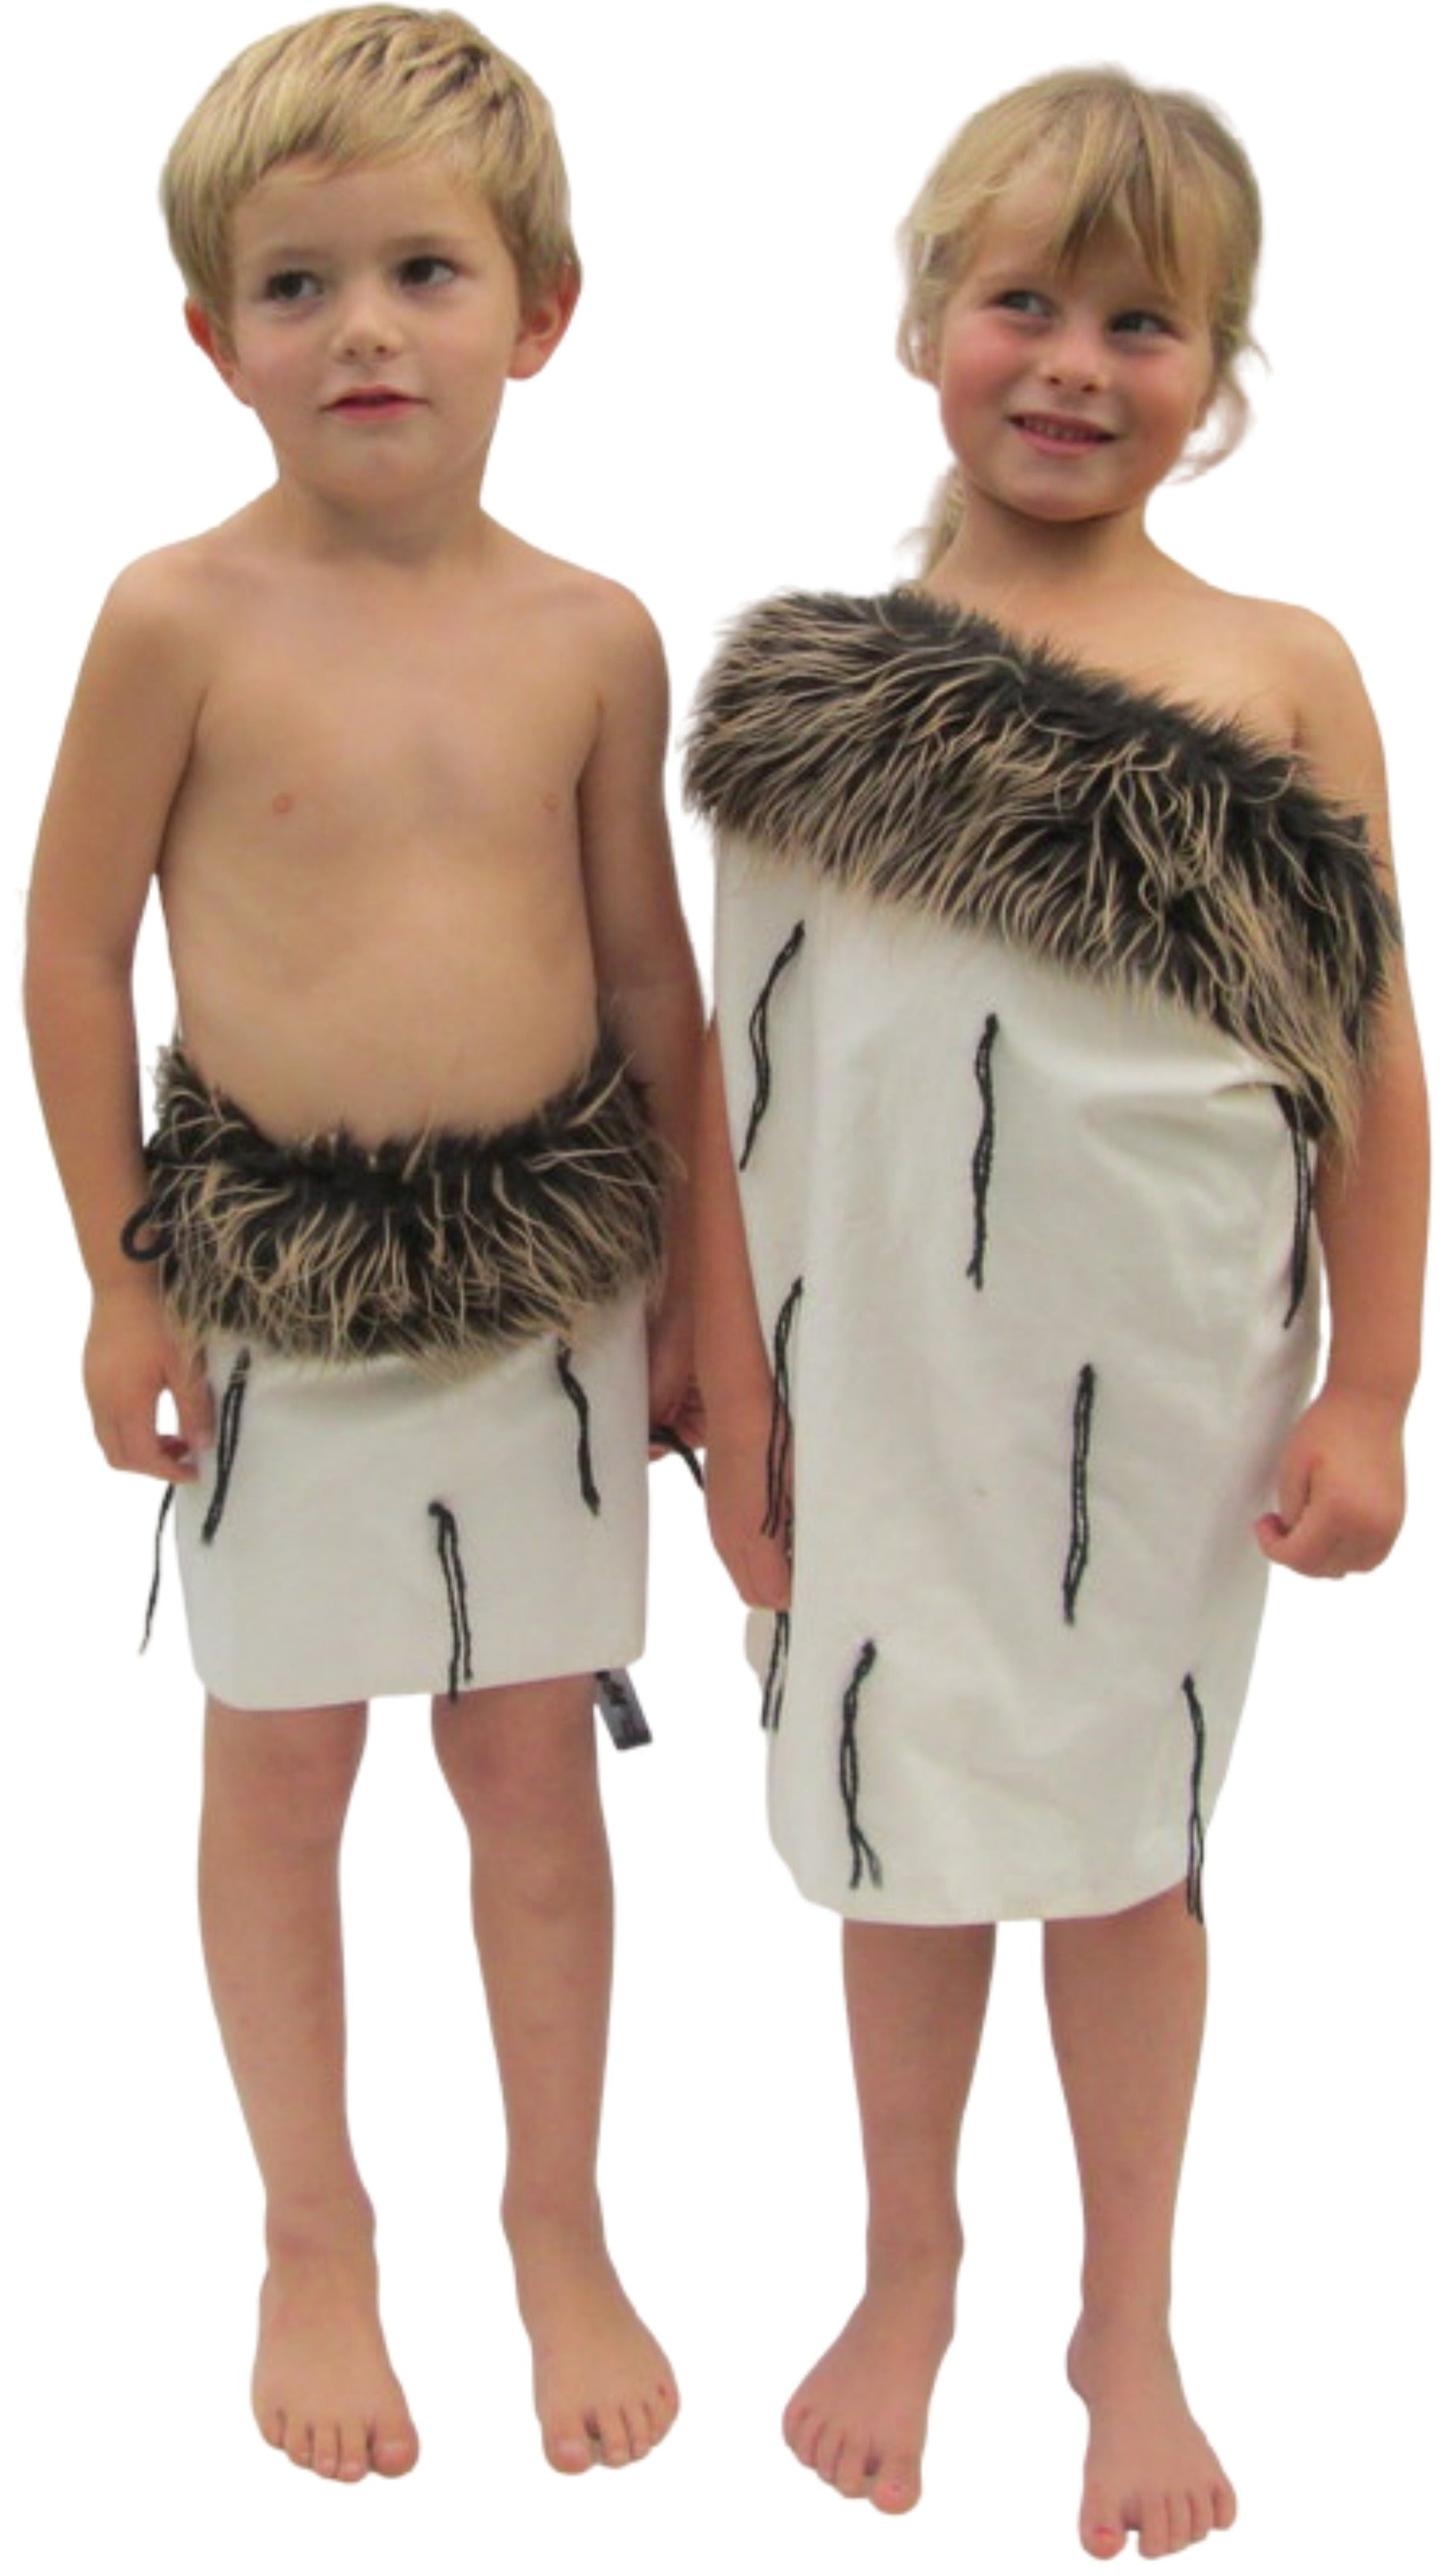 Boys rapaki and childs maori cloak